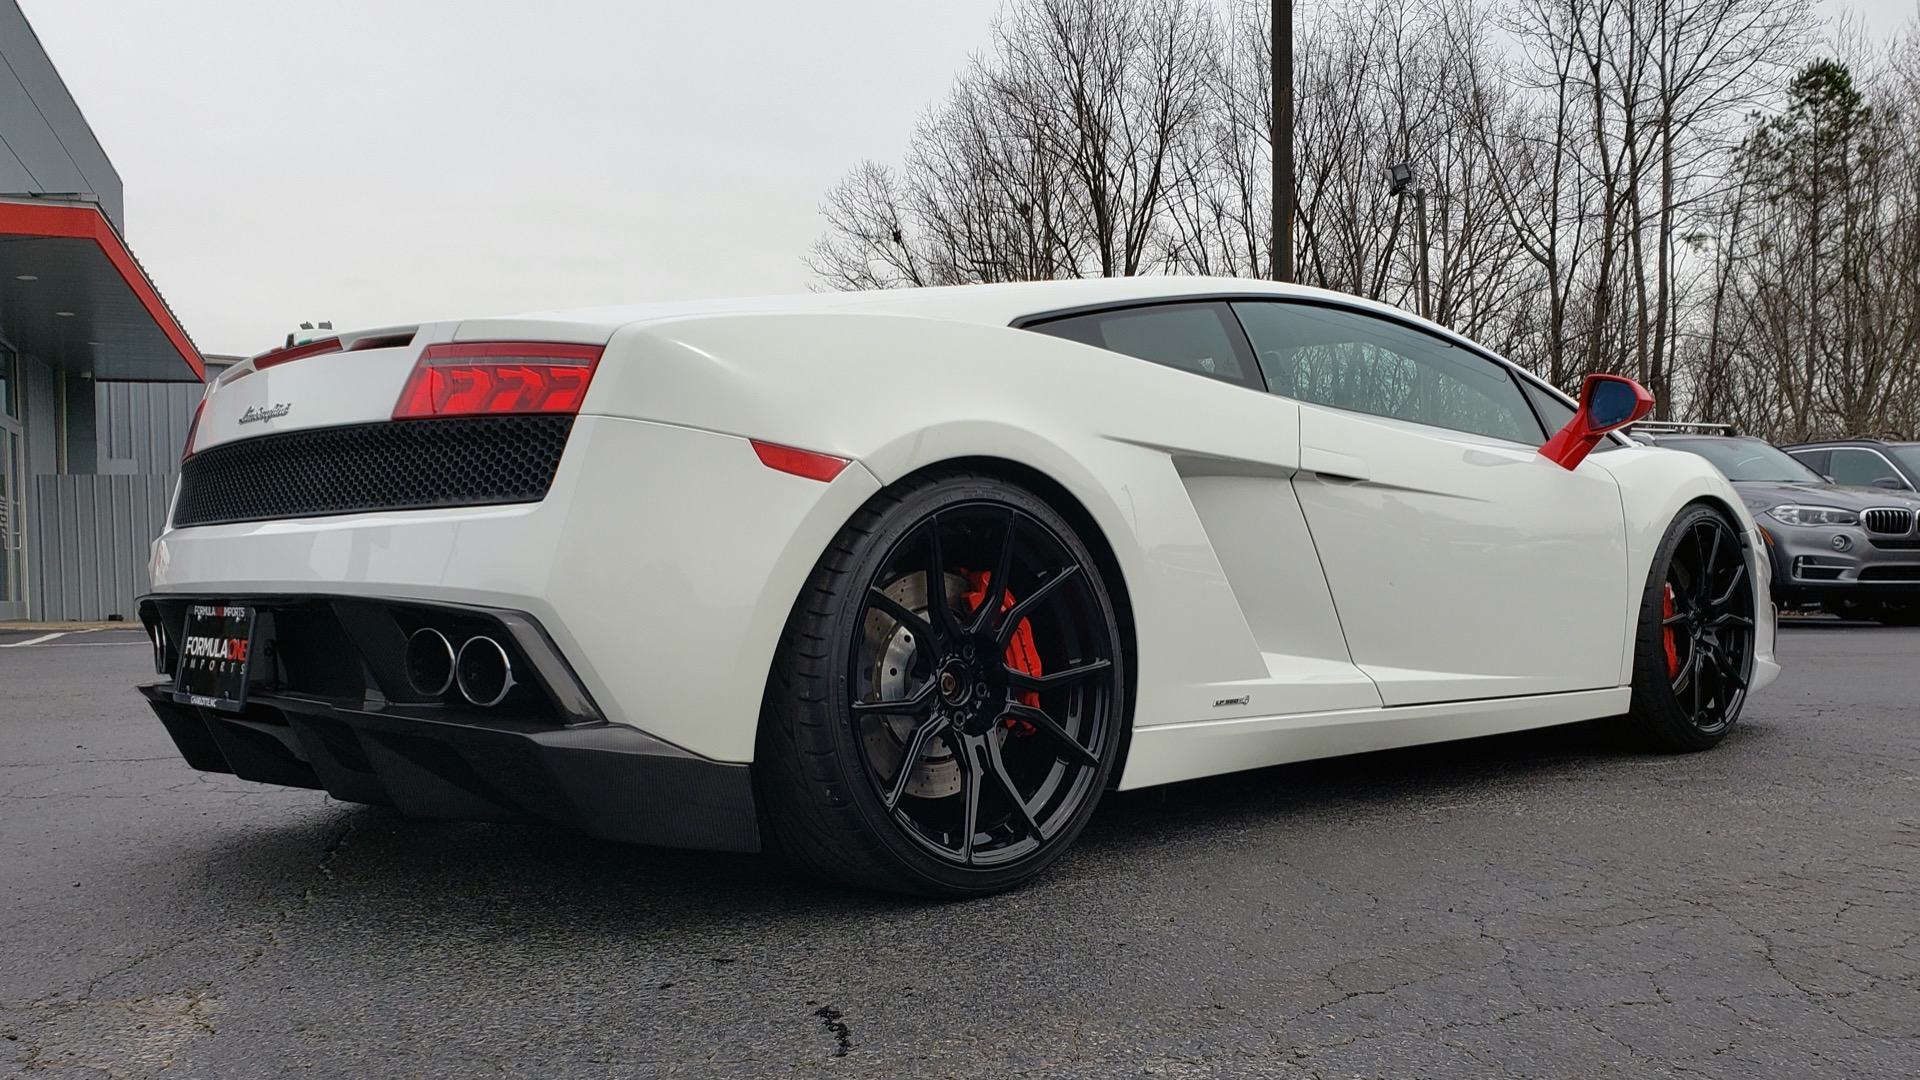 Used 2013 Lamborghini Gallardo LP560-4 560HP / AWD / NAV / CAMERA for sale Sold at Formula Imports in Charlotte NC 28227 14